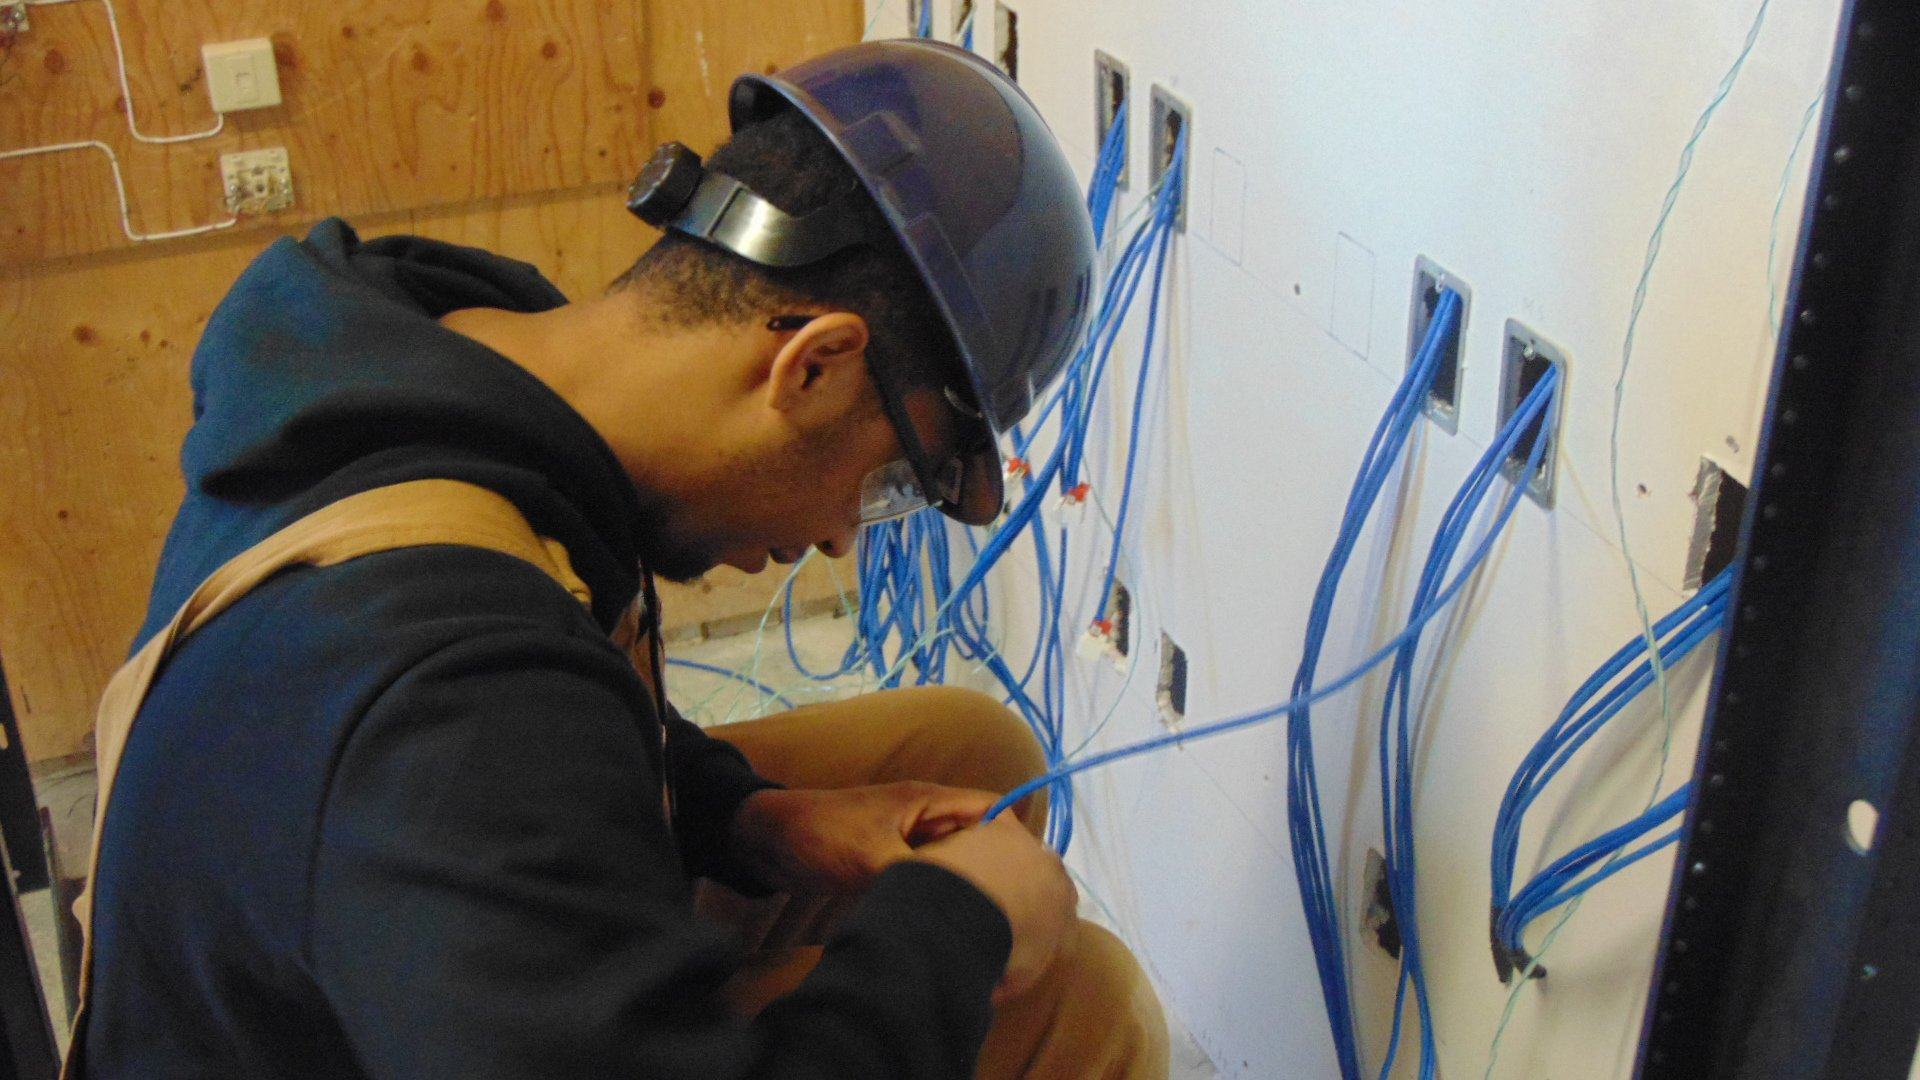 network cabling student in the workshop at Herzing College